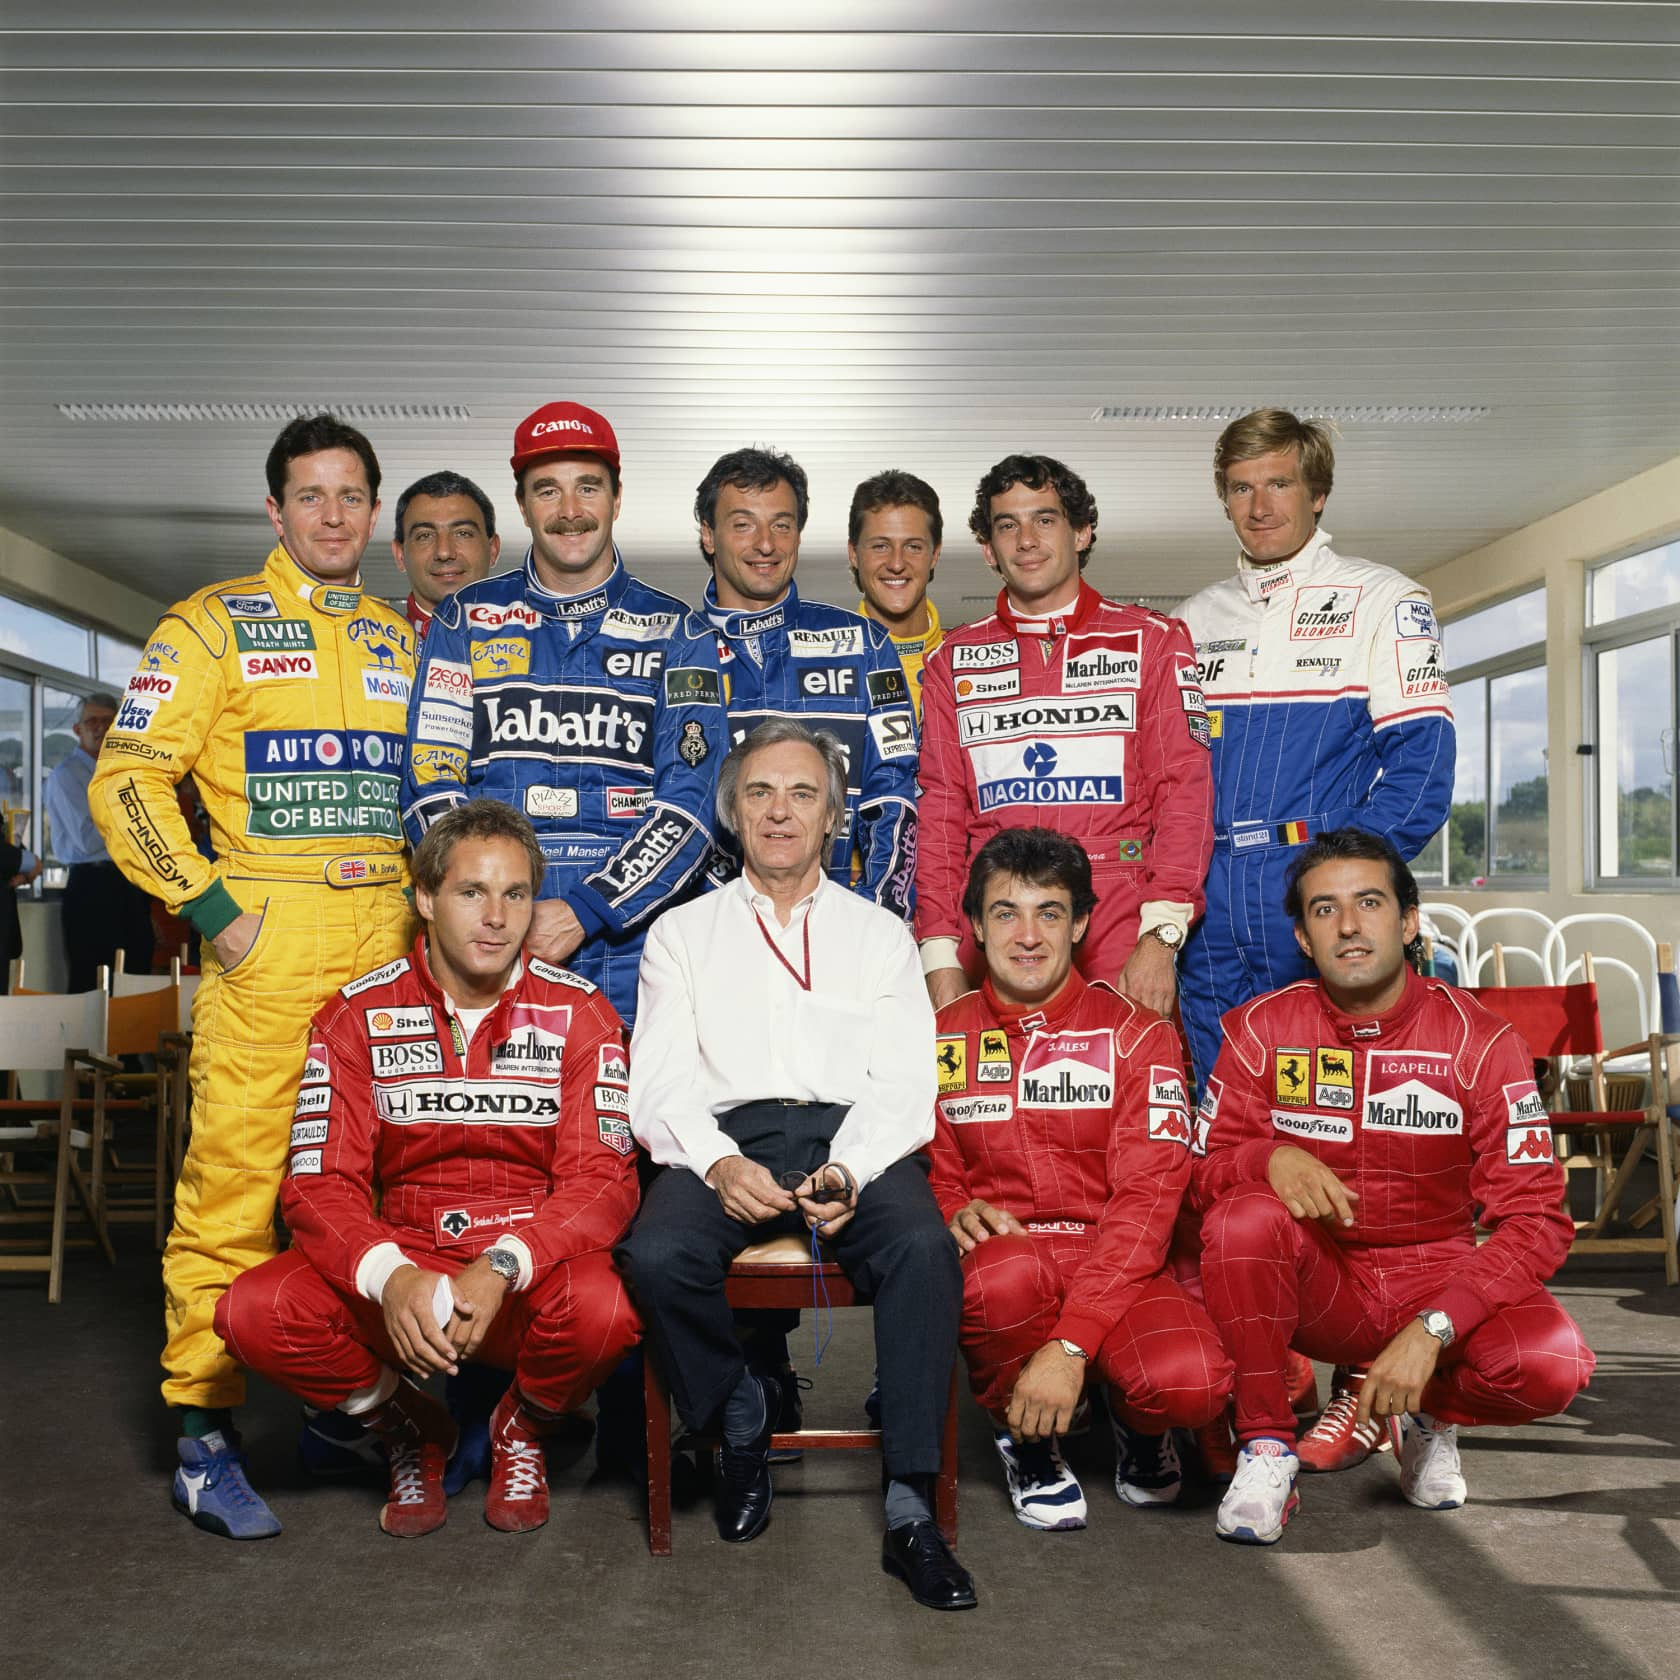 Terry O'Neill Bernie Ecclestone with Formula 1 Drivers Posthumous C-Type Print